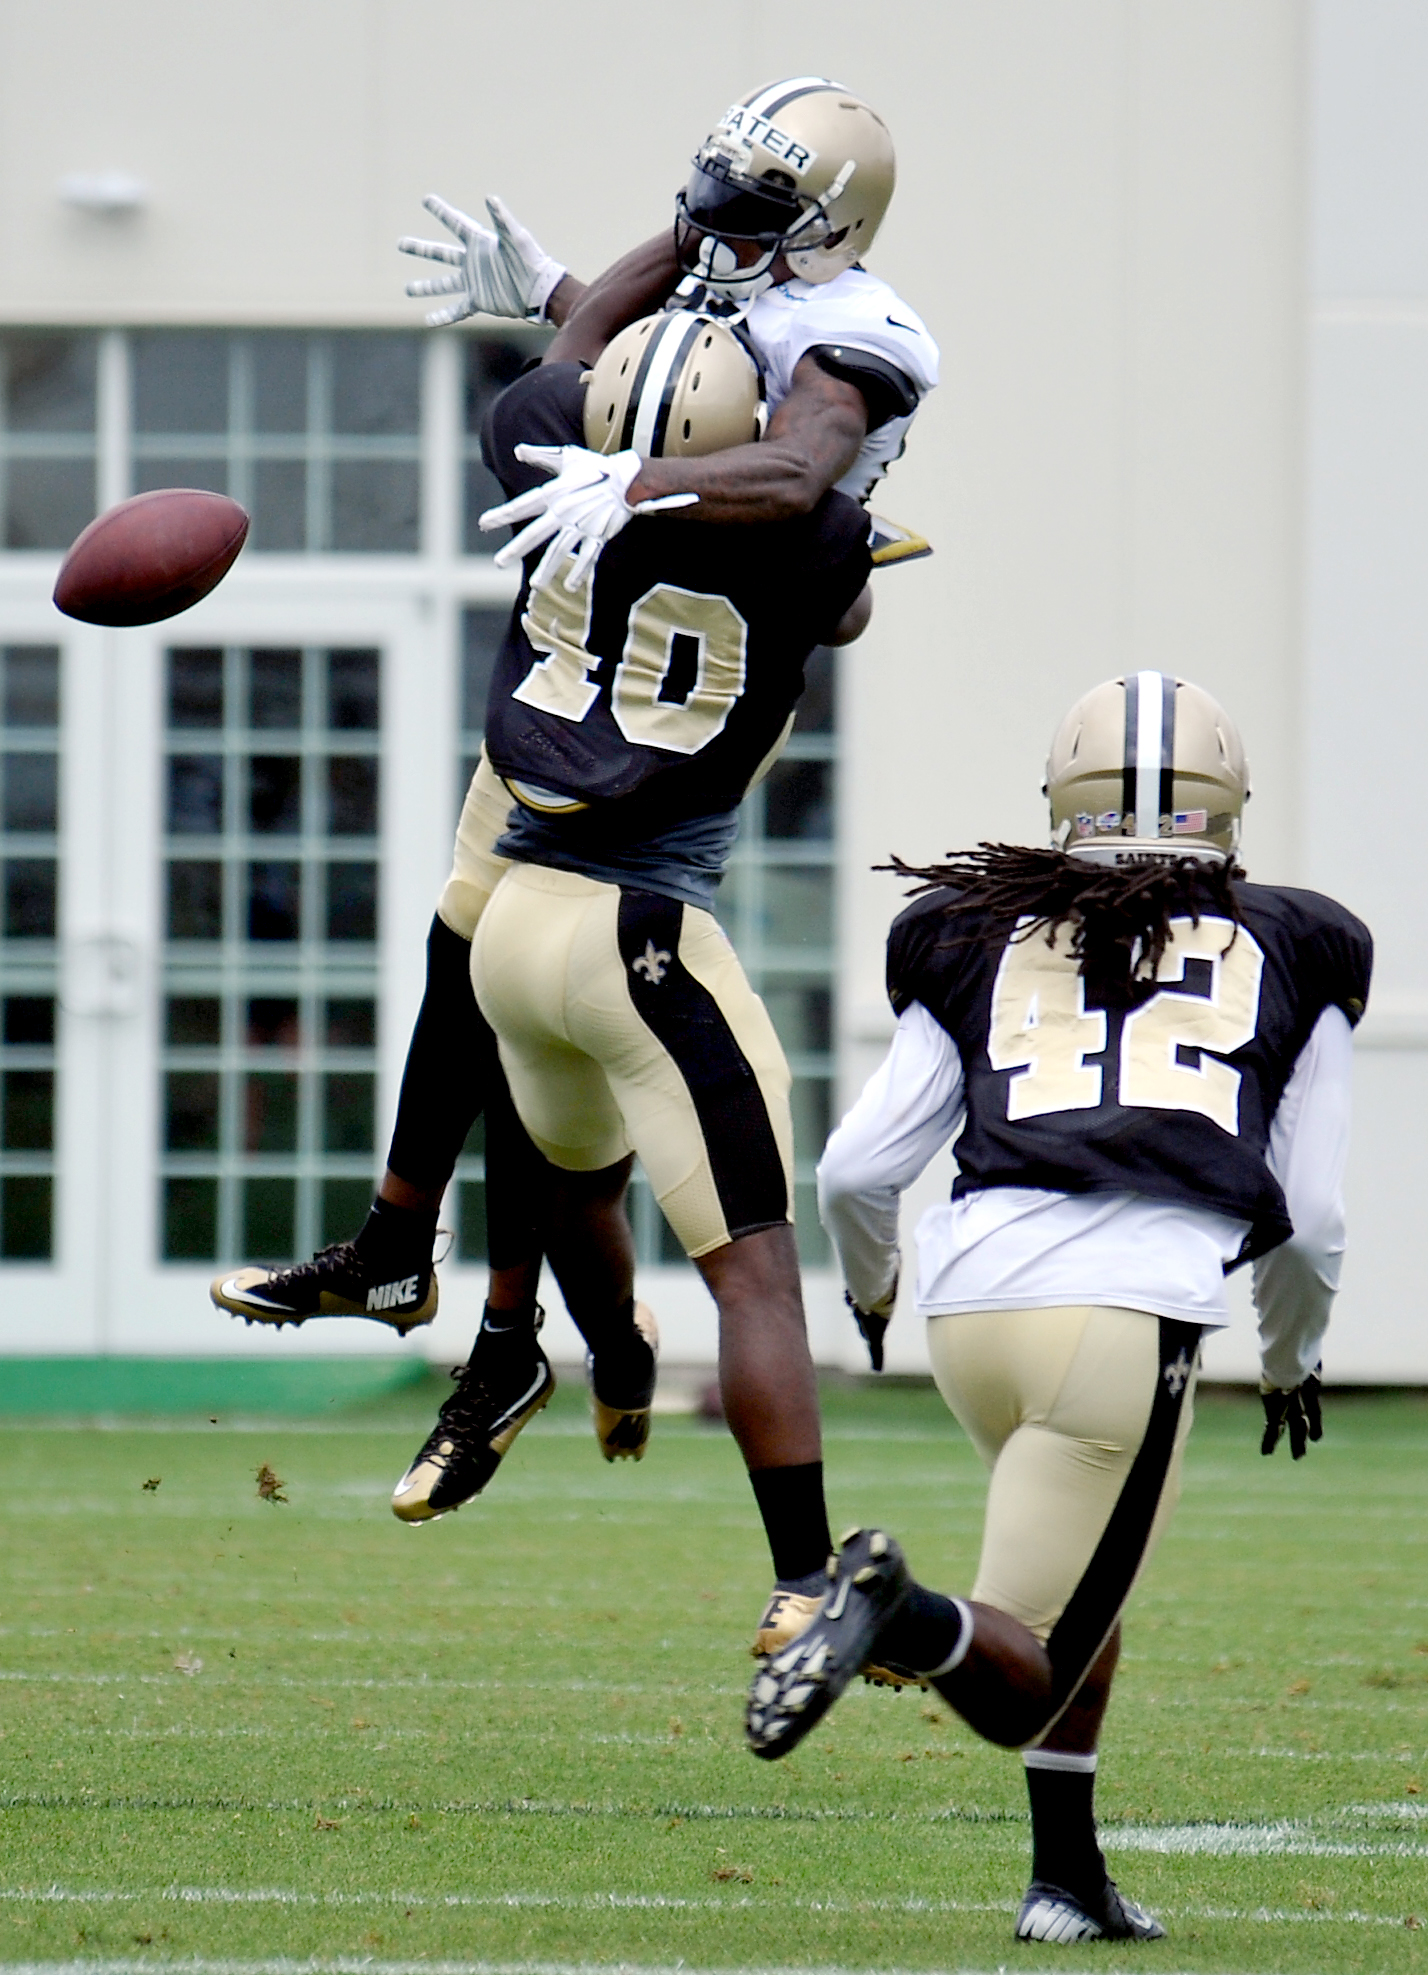 New Orleans Saints wide receiver Kyle Prater (86) leaps for a pass in a scrimmage game with New Orleans Saints defensive back Delvin Breaux (40) defending during the team's NFL football training camp in White Sulphur Springs, W. Va., Friday, Aug. 7, 2015.